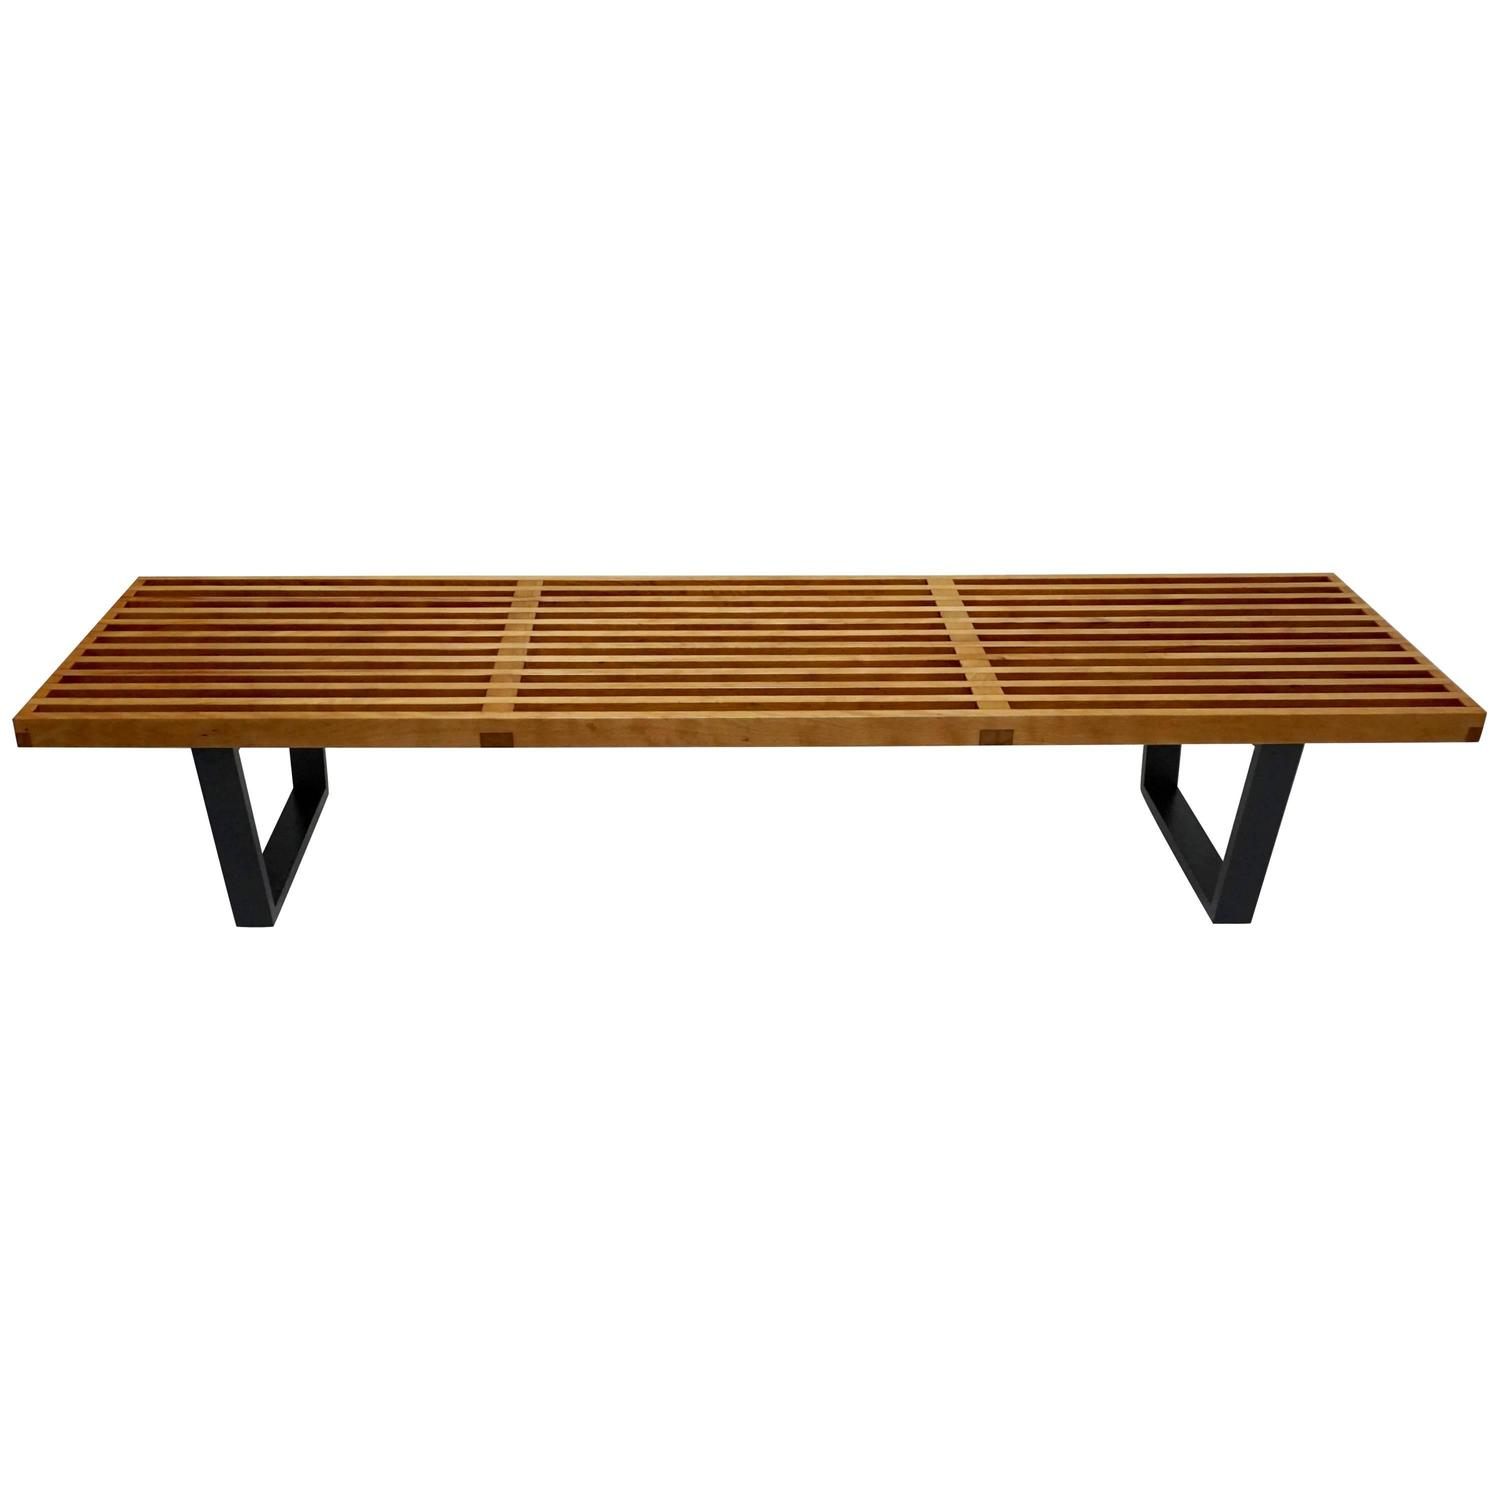 George Nelson Slat Bench At 1stdibs